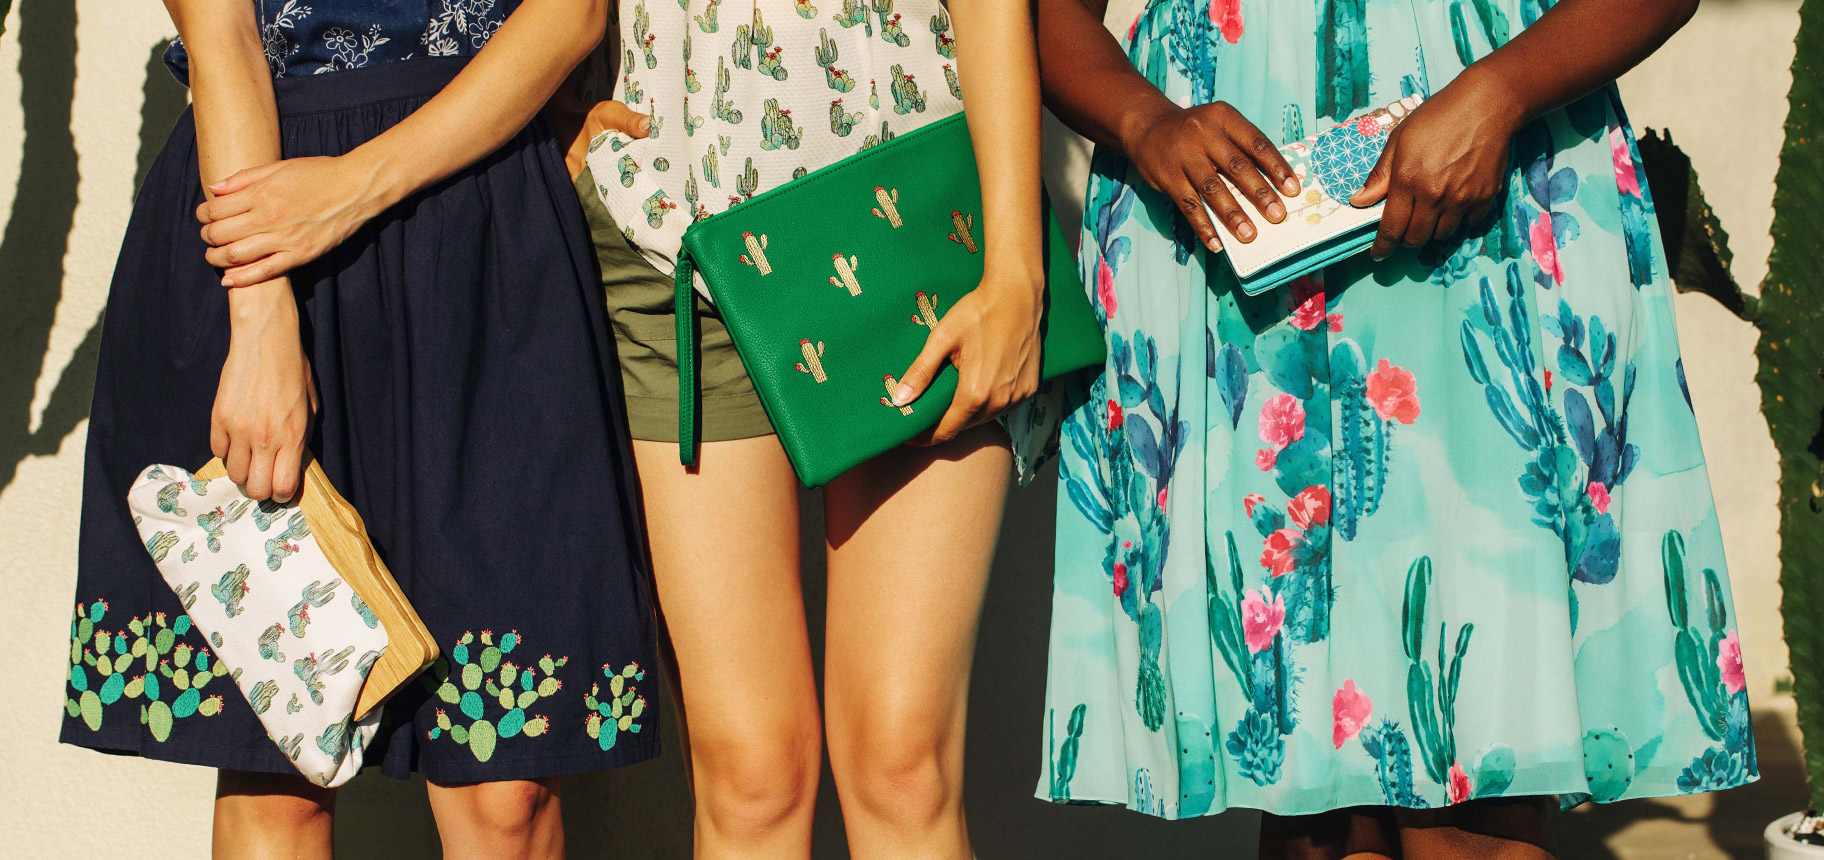 'Sol' Mates. Embrace summer style with an ethereal entourage of balmy prints, statement patterns, & exclusive pieces that are anything but ordinary.